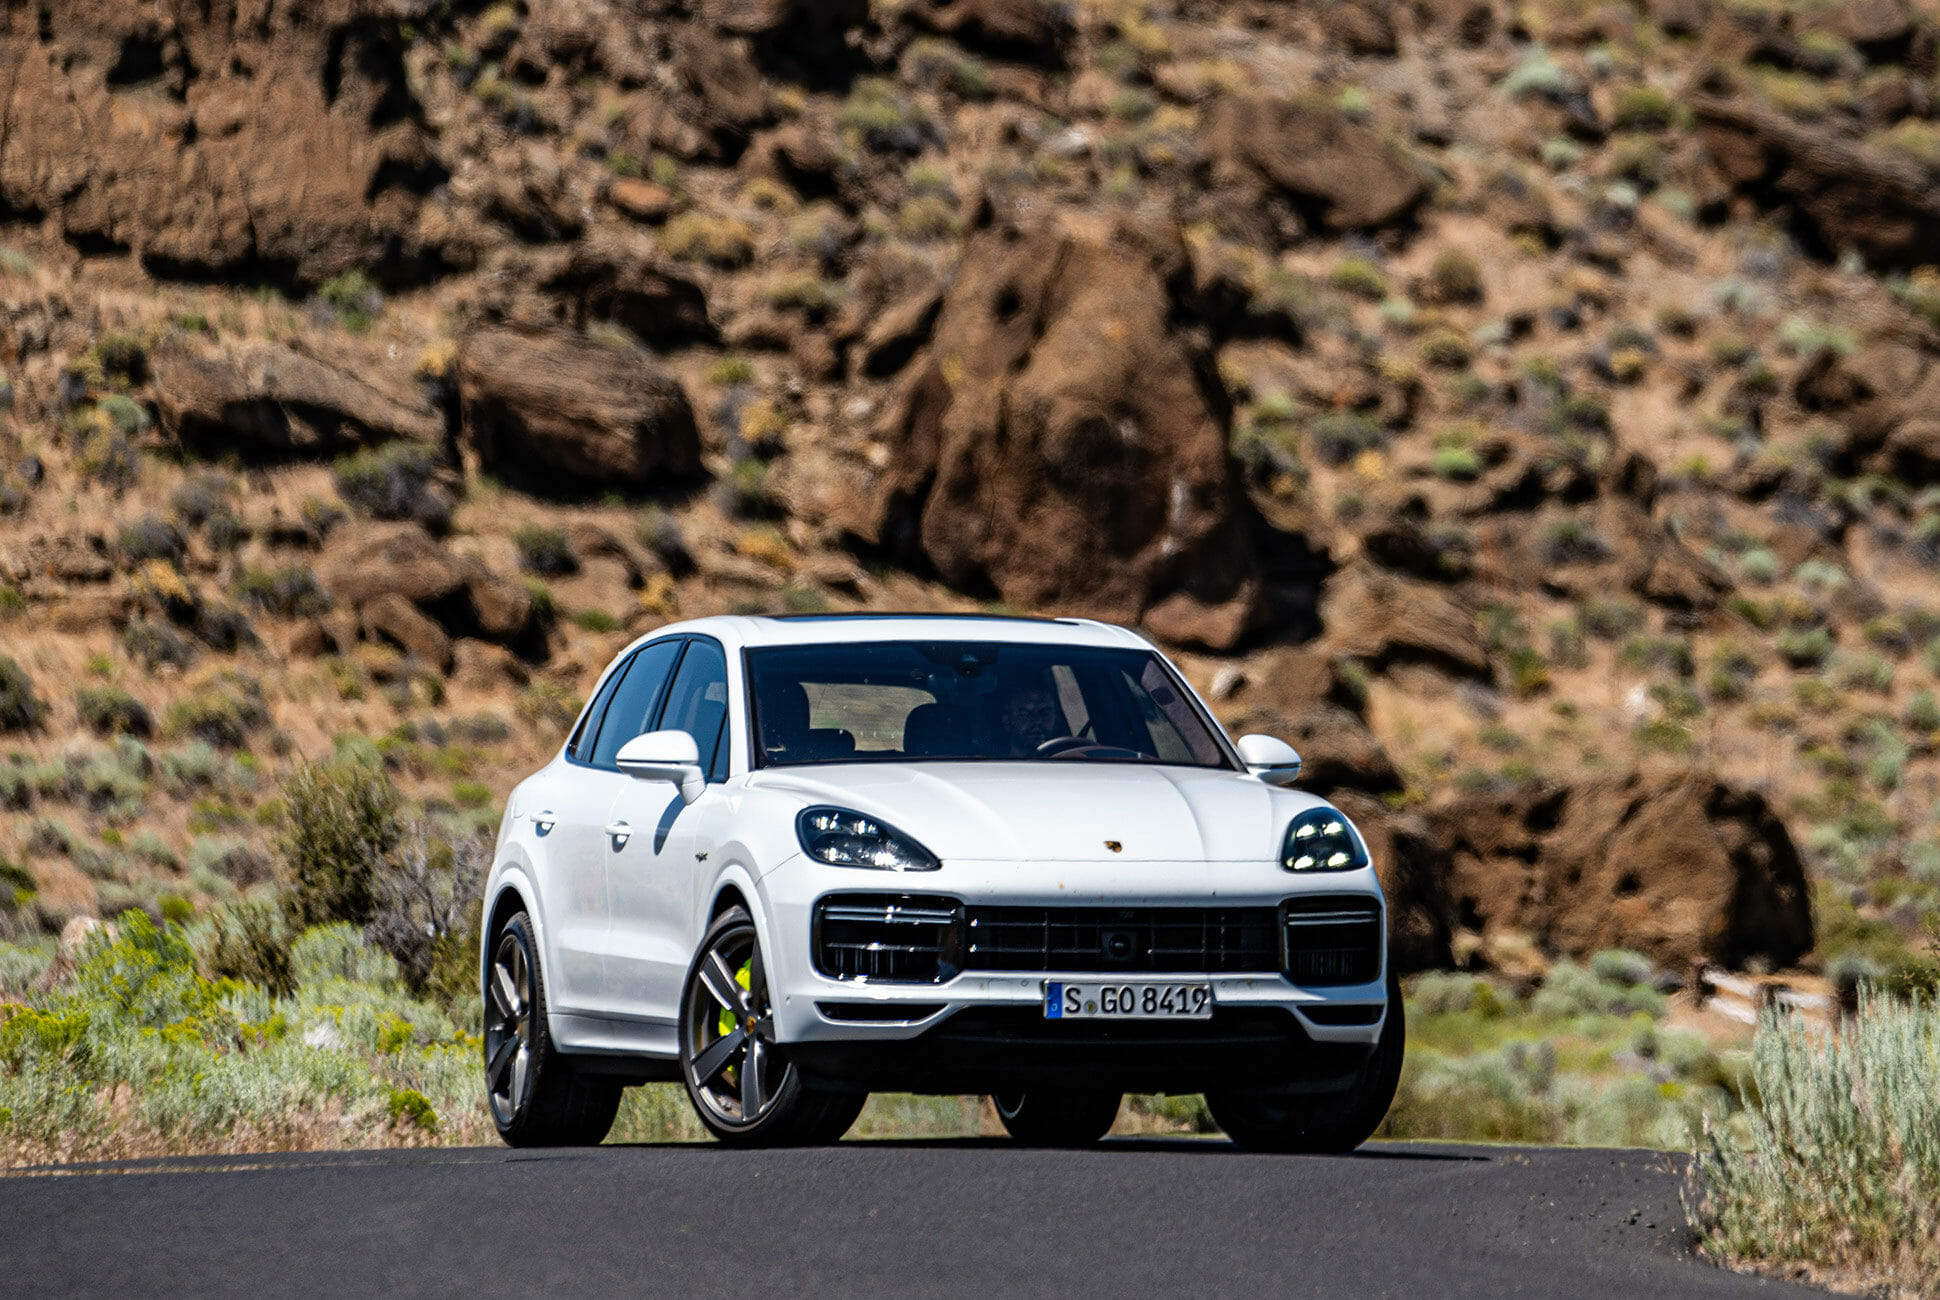 Pair-of-High-Tech-Porsche-Cayenne-Hybrids-gear-patrol-Fort-ambience-2